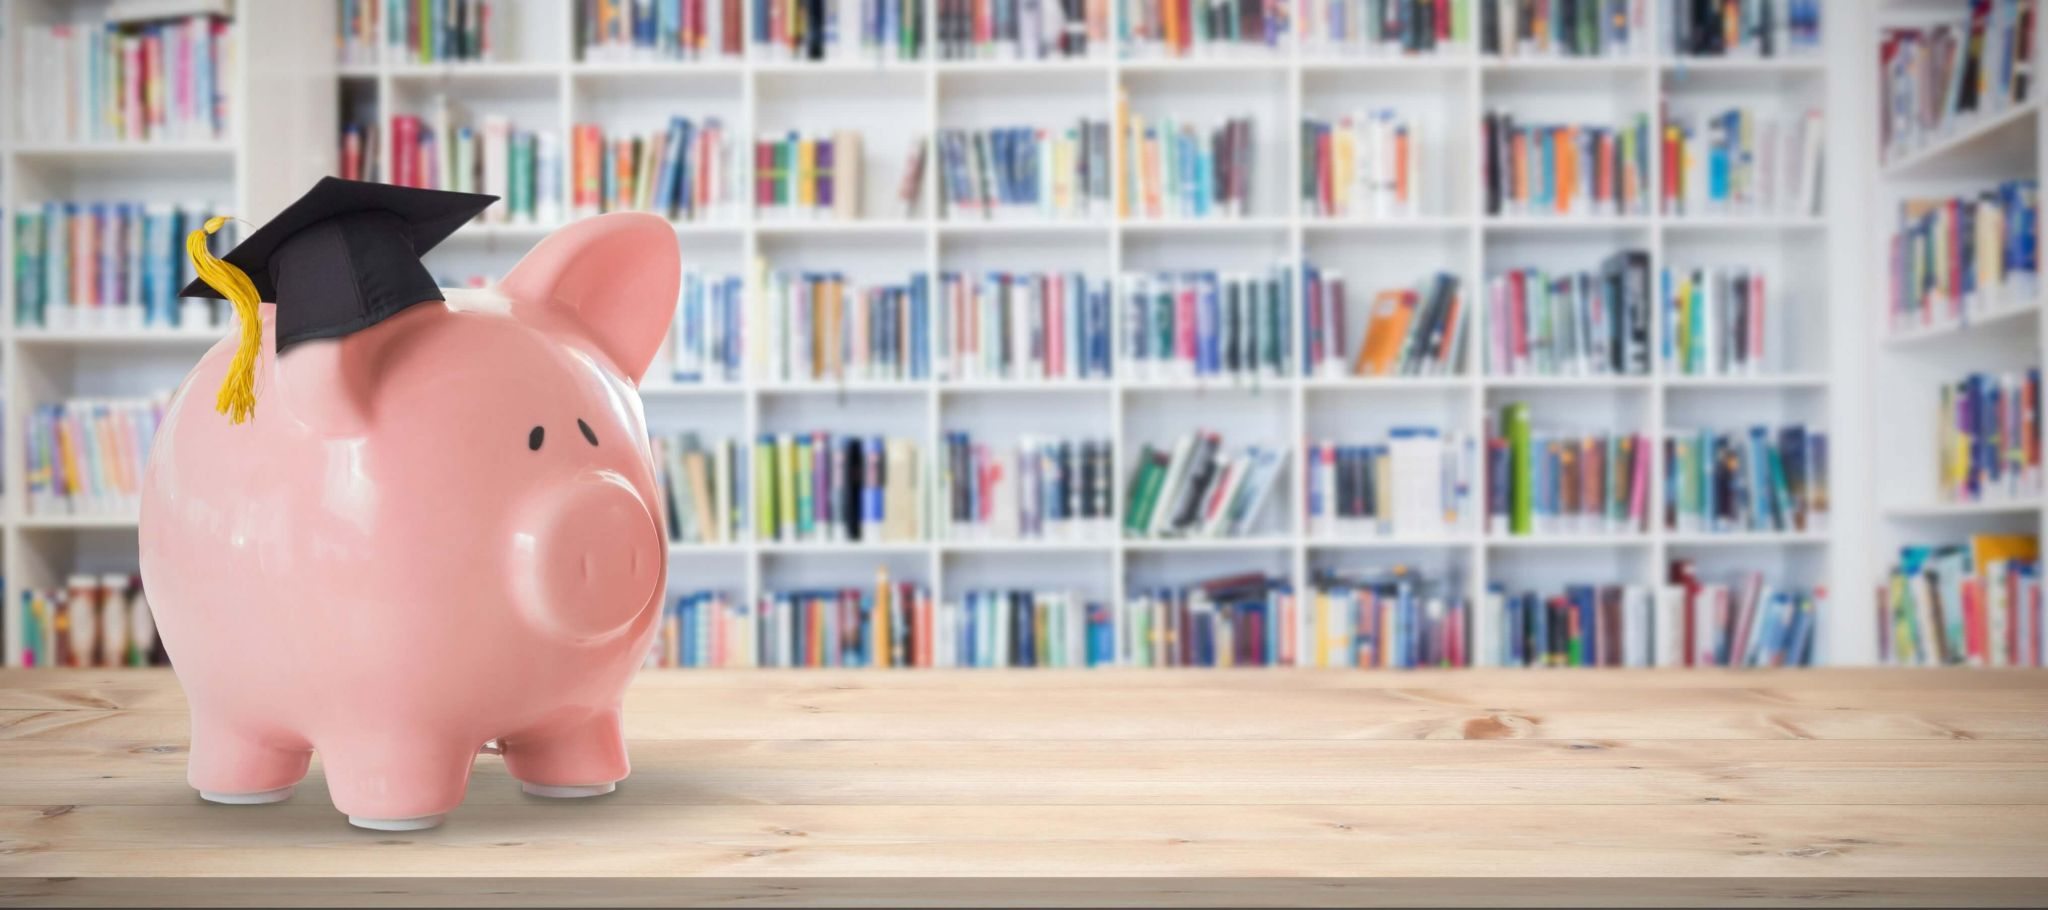 fun money lessons - a piggy bank wearing a graduation hat in a library